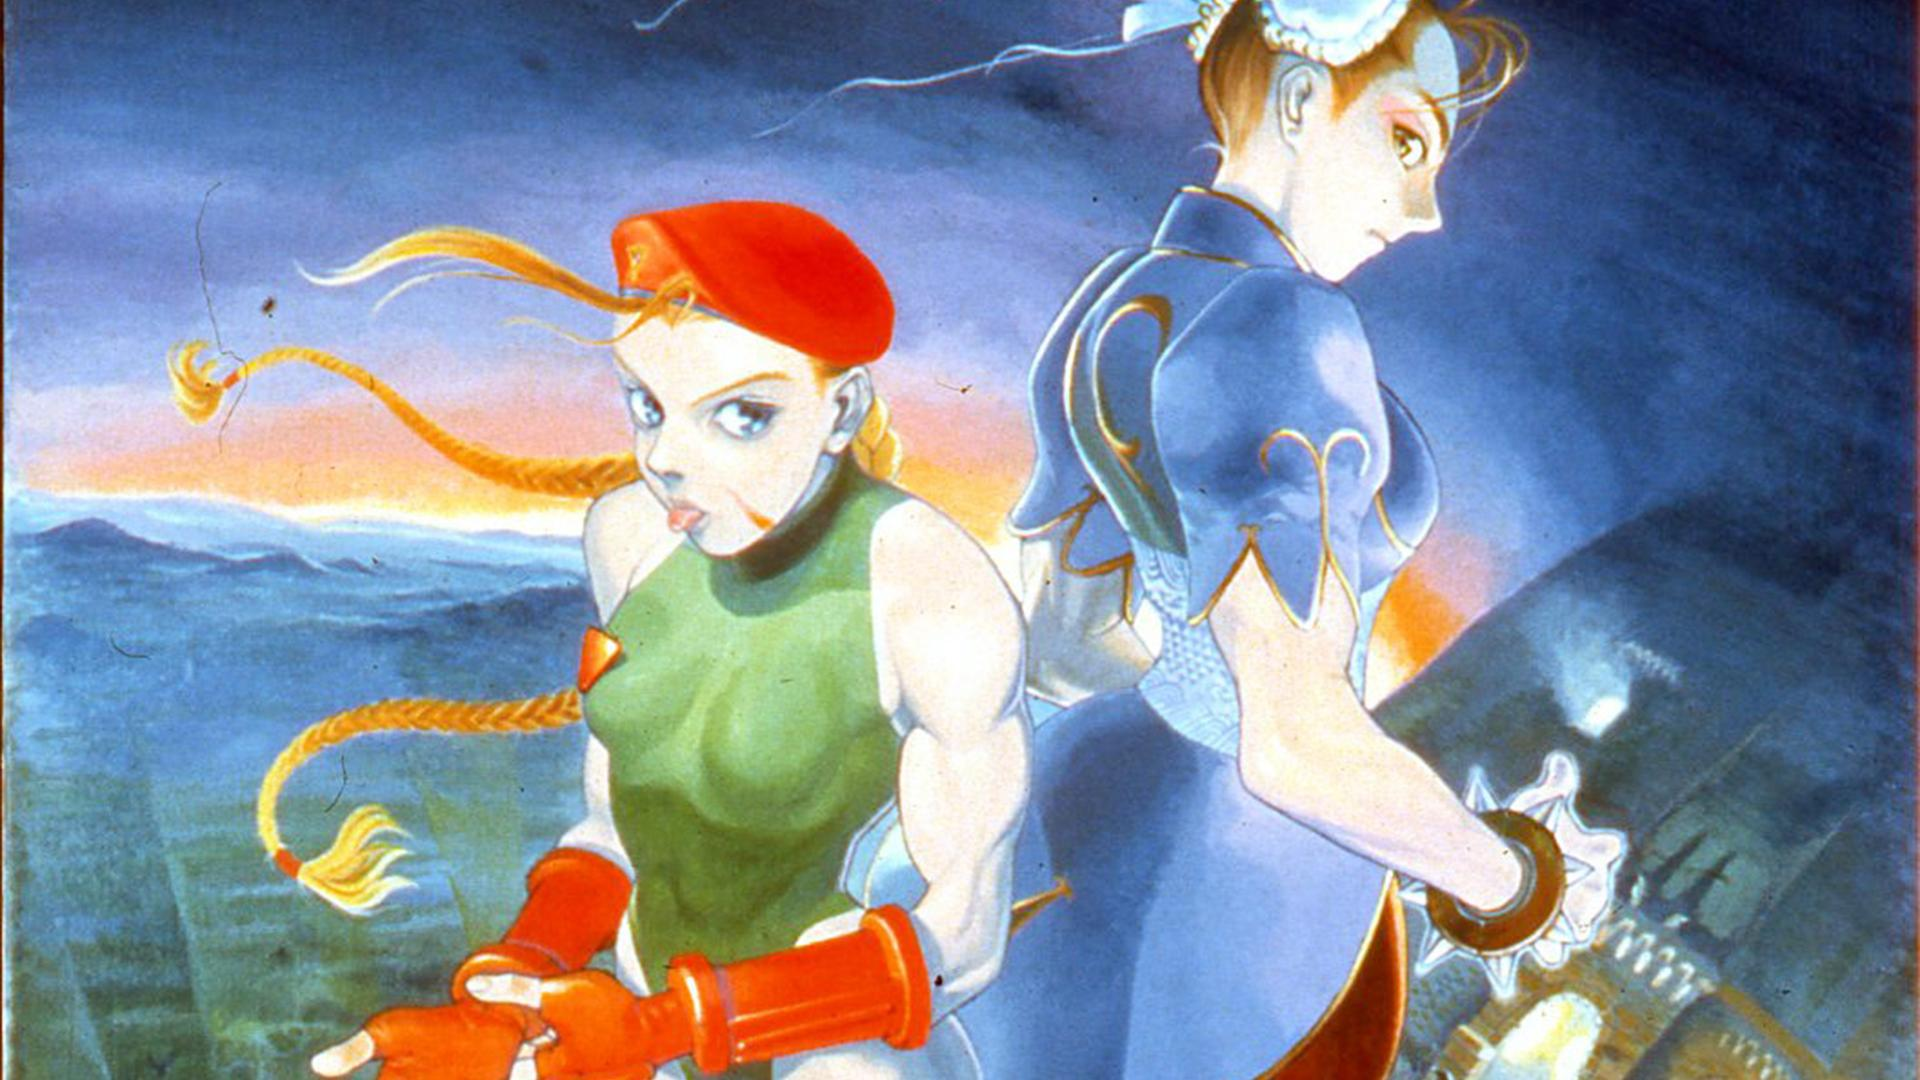 98+ Street Fighter 2 Wallpapers Wallpapers Cave. Street Fighter 2